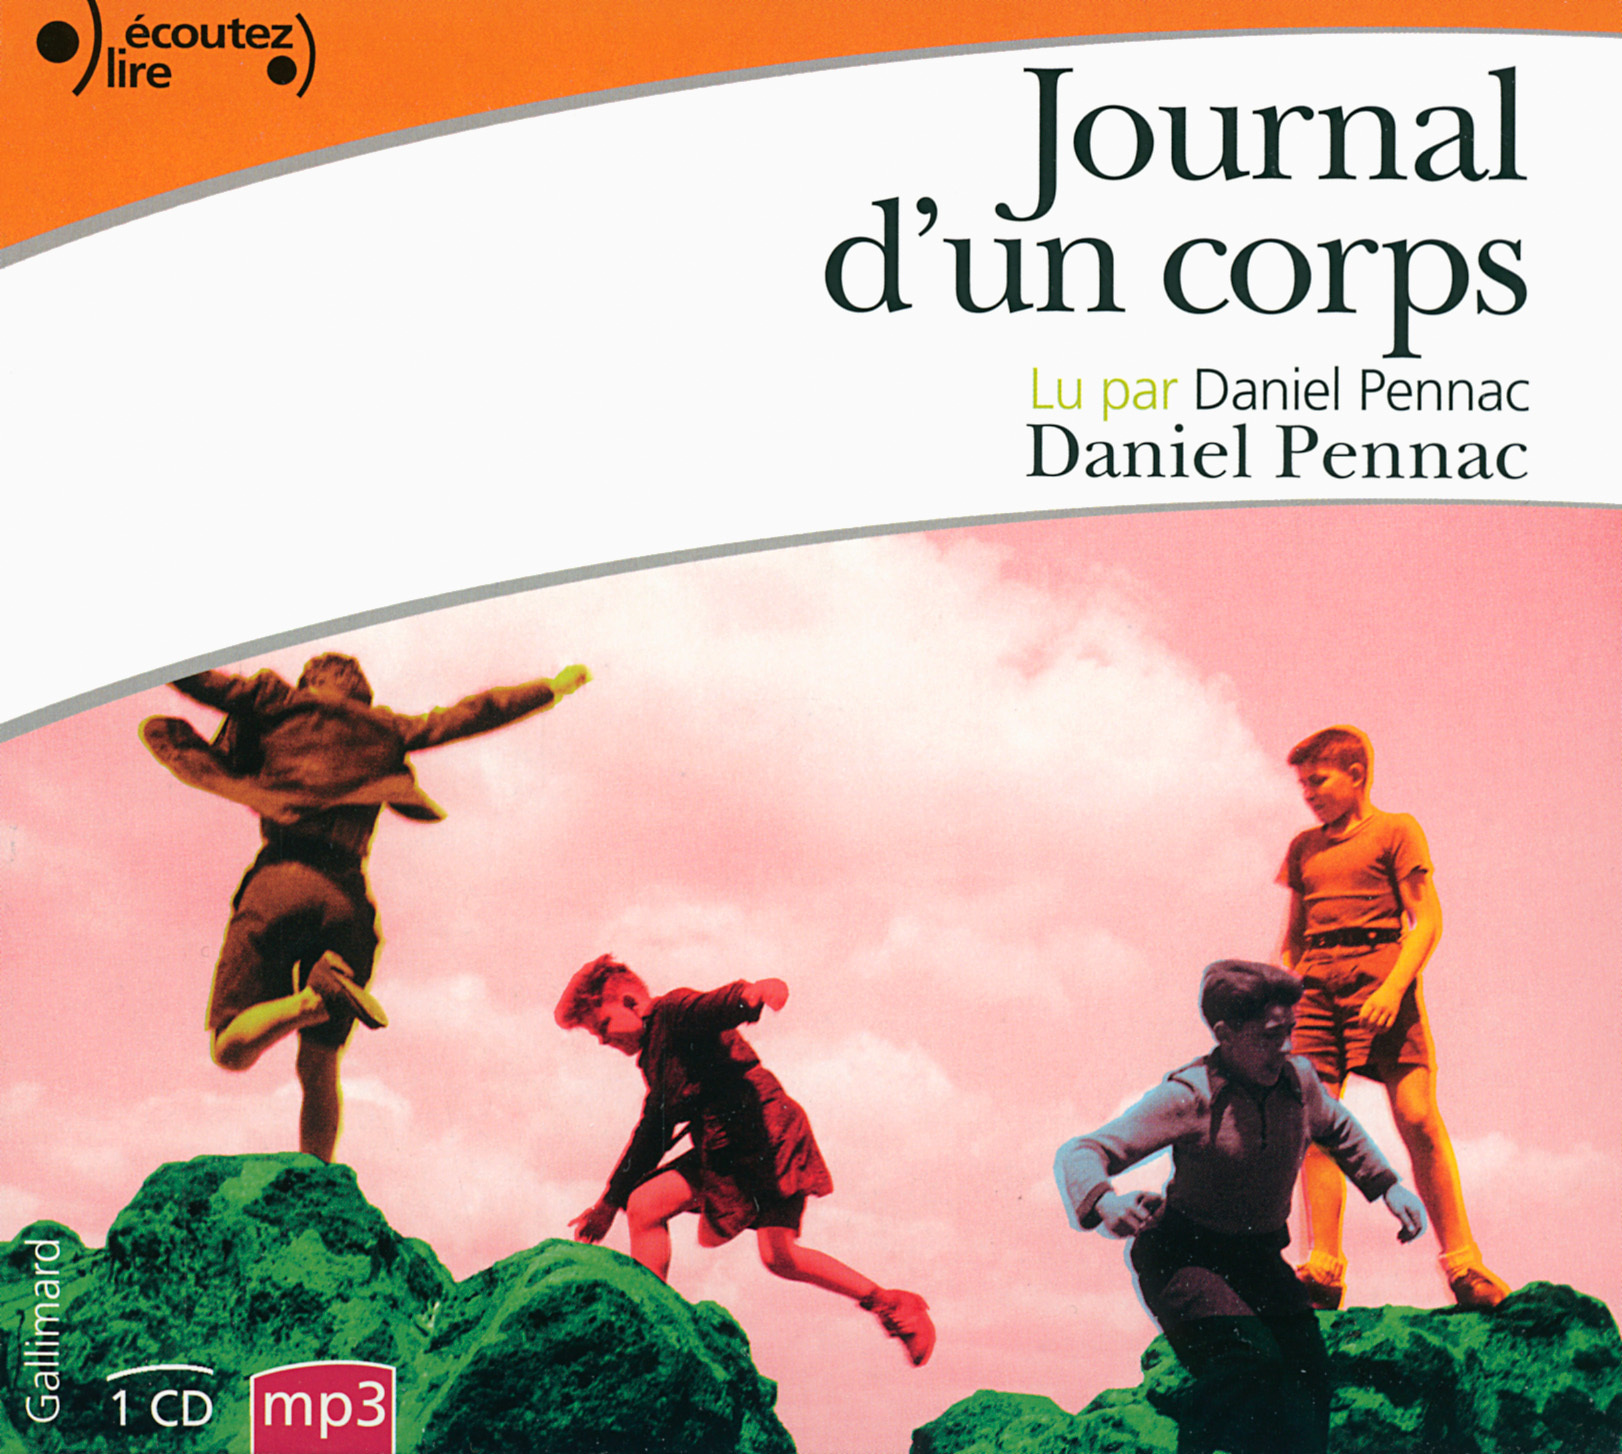 JOURNAL D'UN CORPS CD